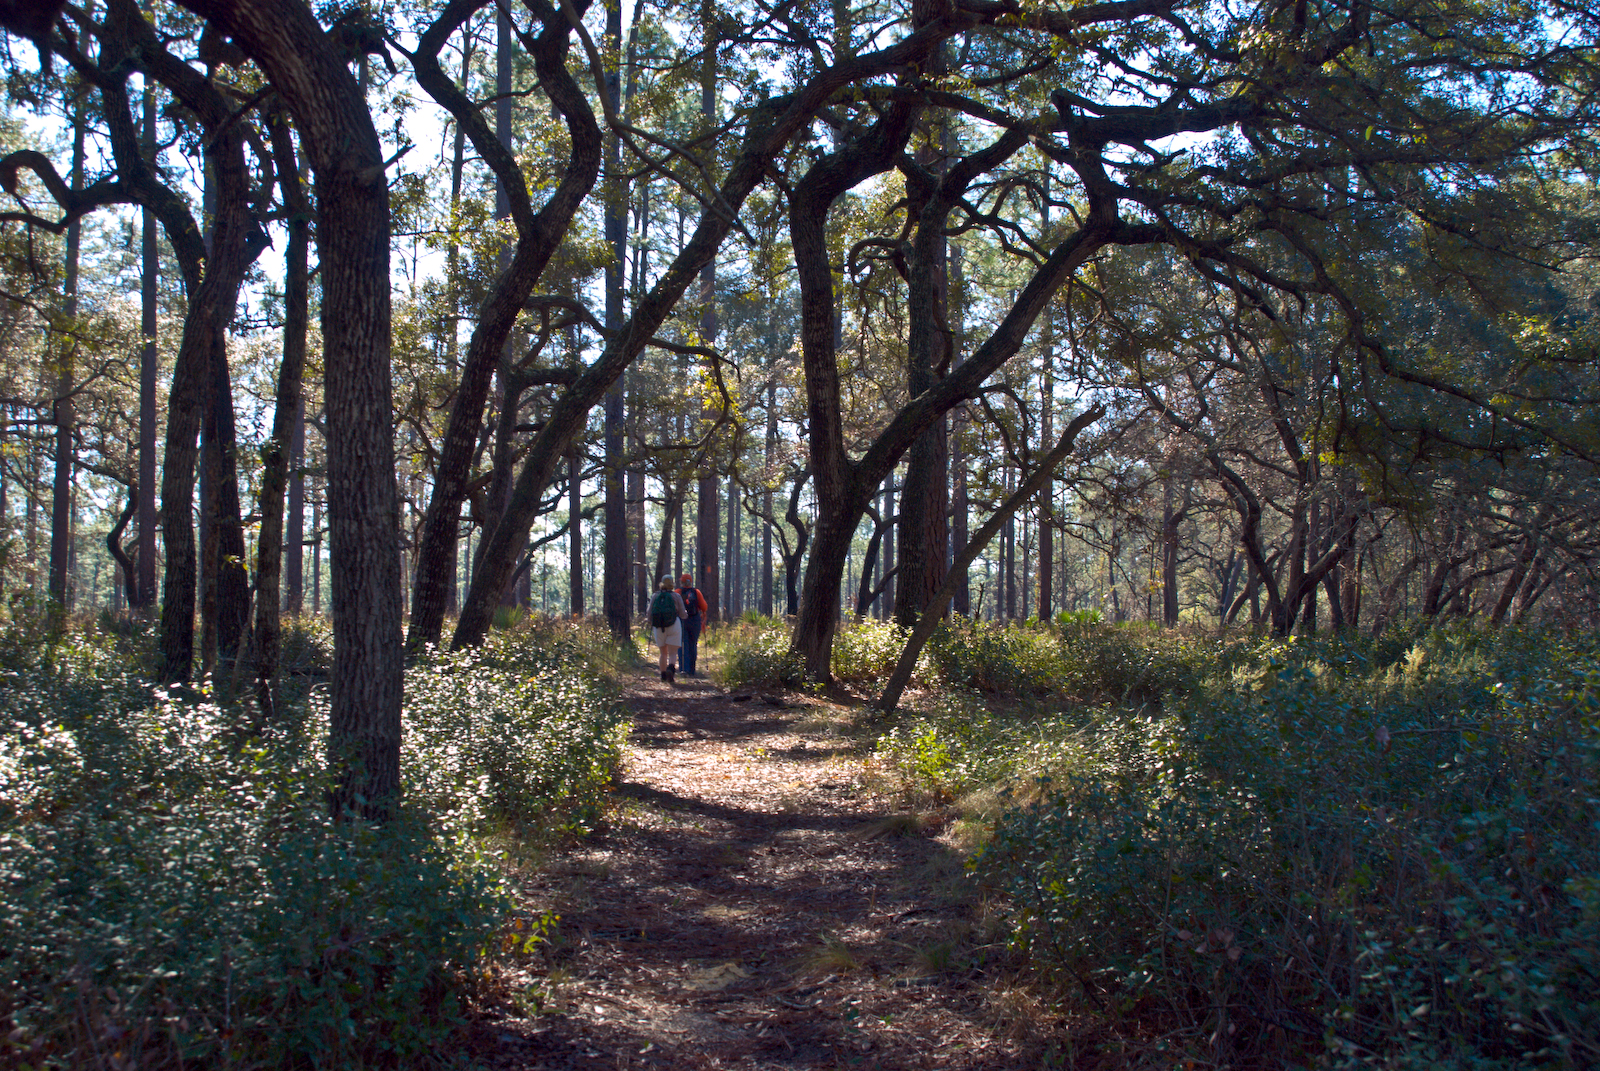 Hiking amid longleaf pines on the Florida Trail